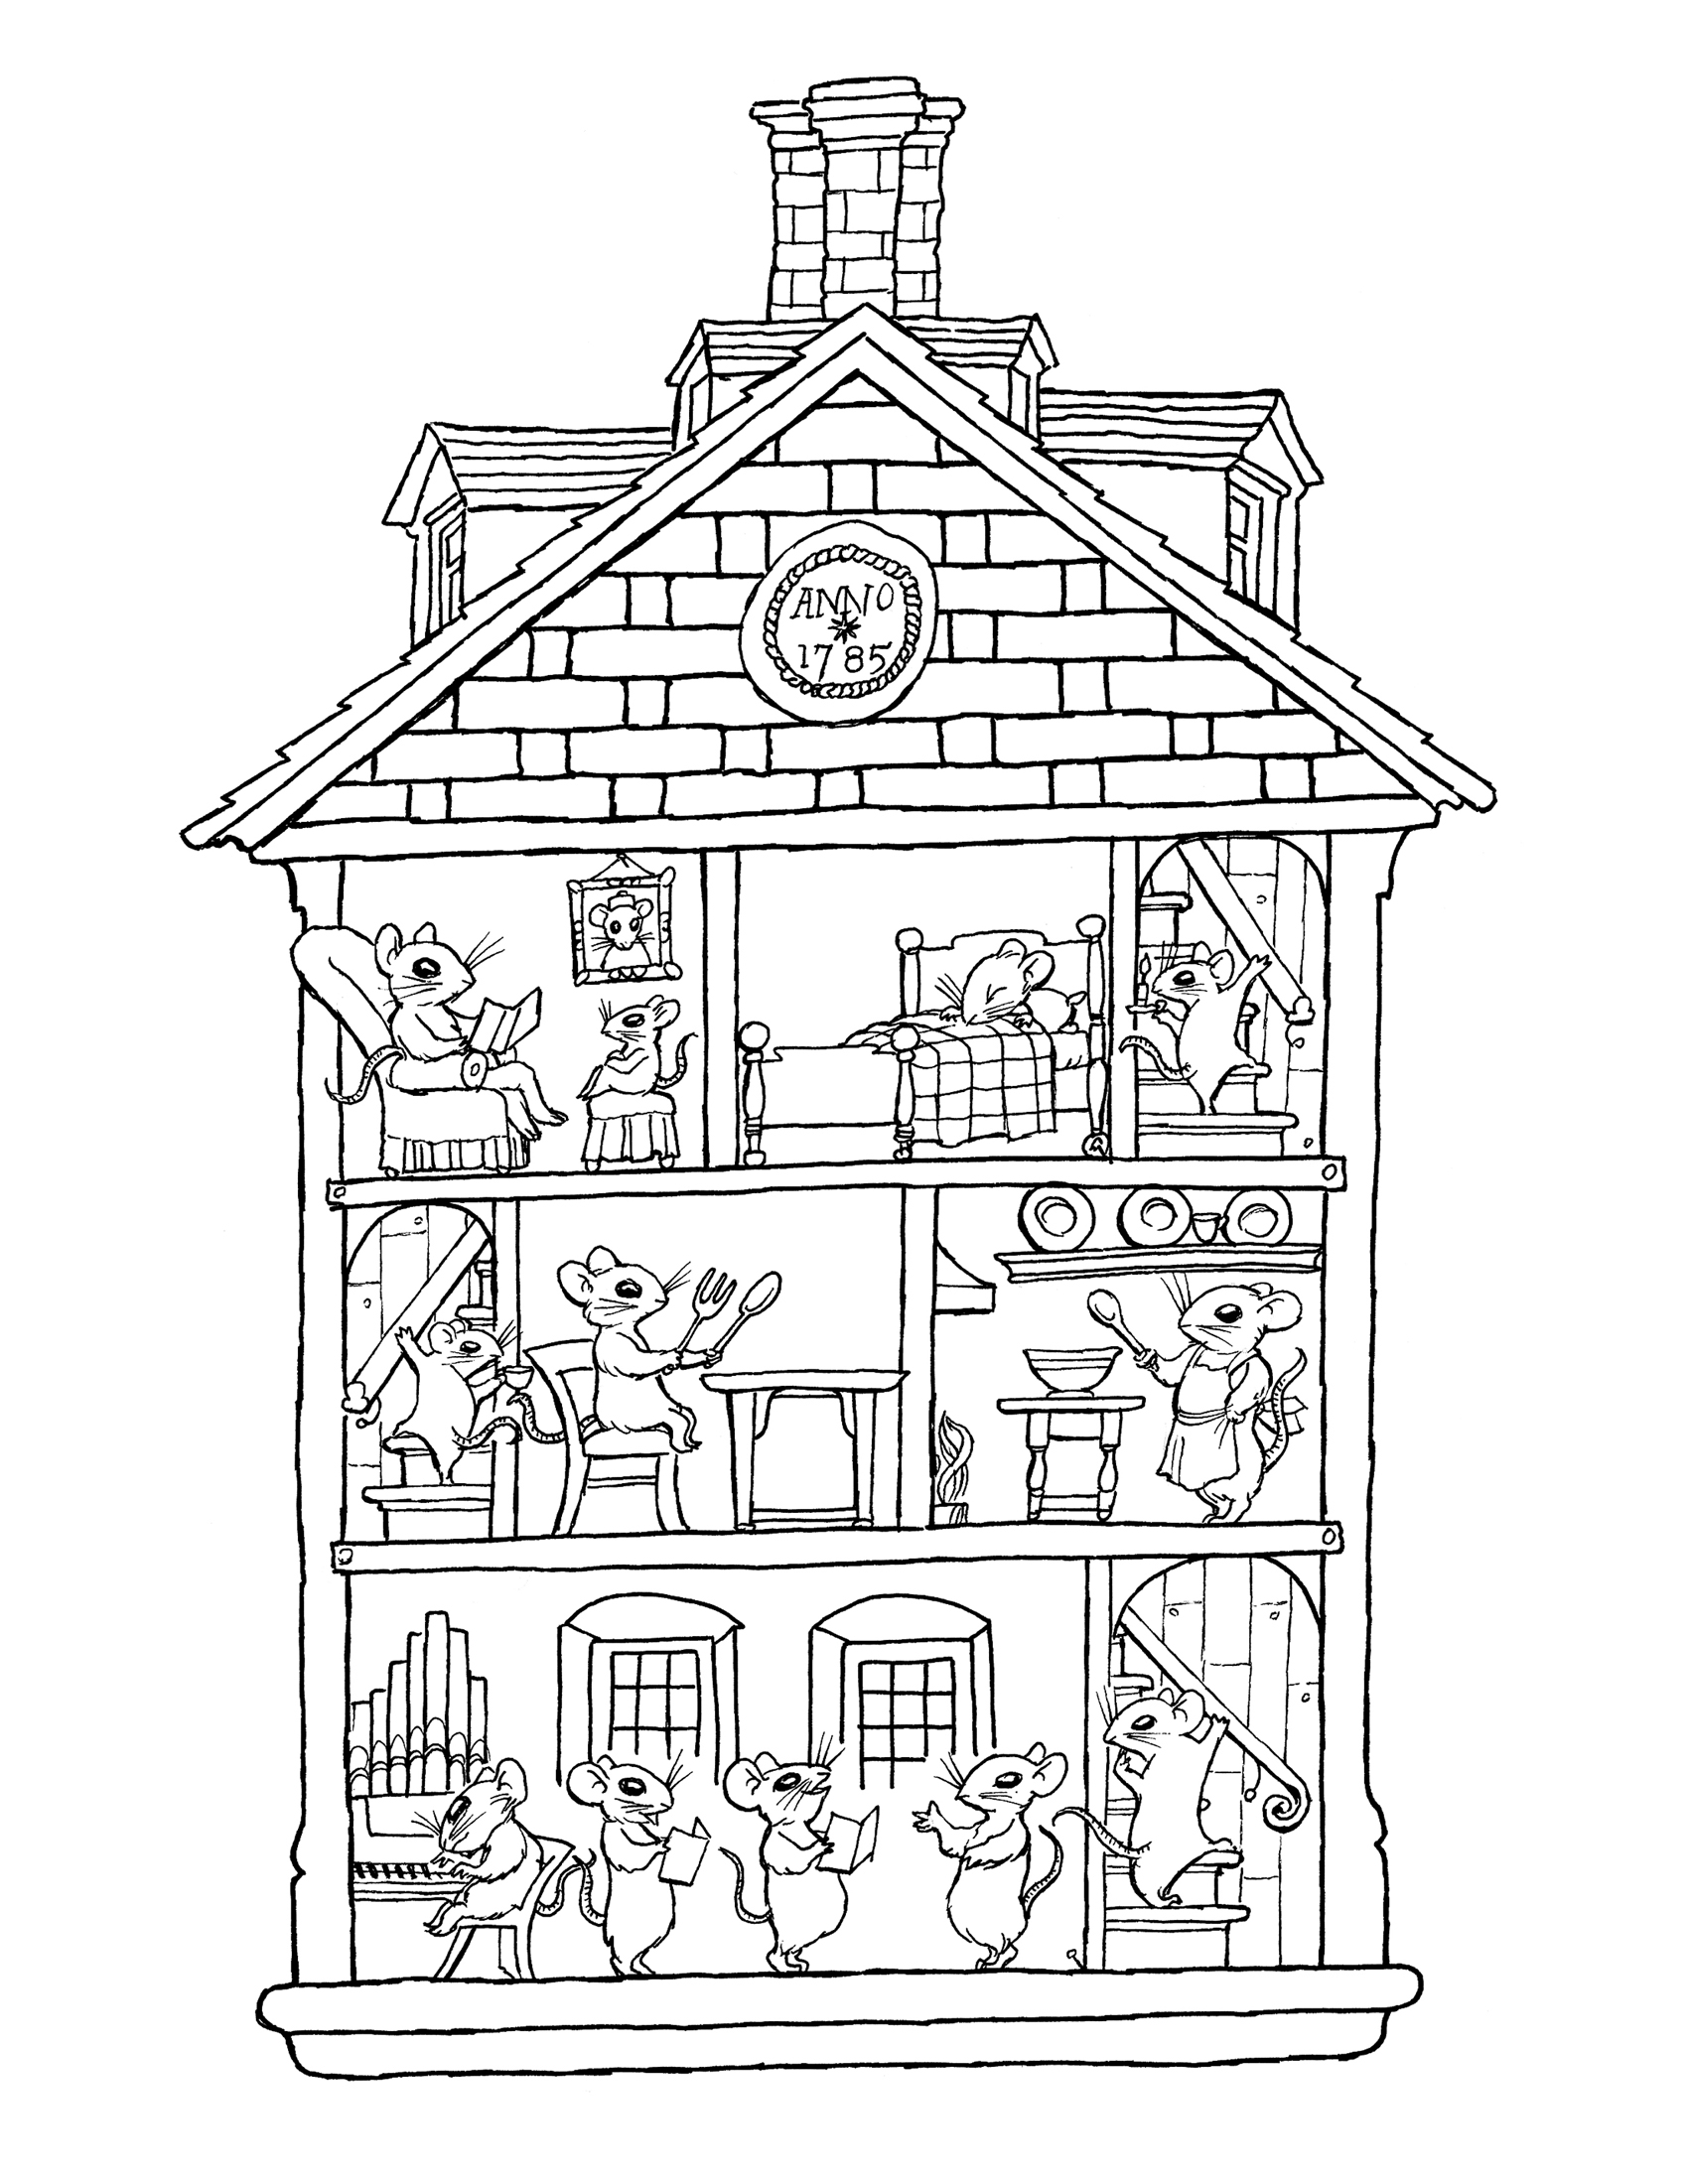 coloring worksheets house house coloring pages to download and print for free coloring house worksheets